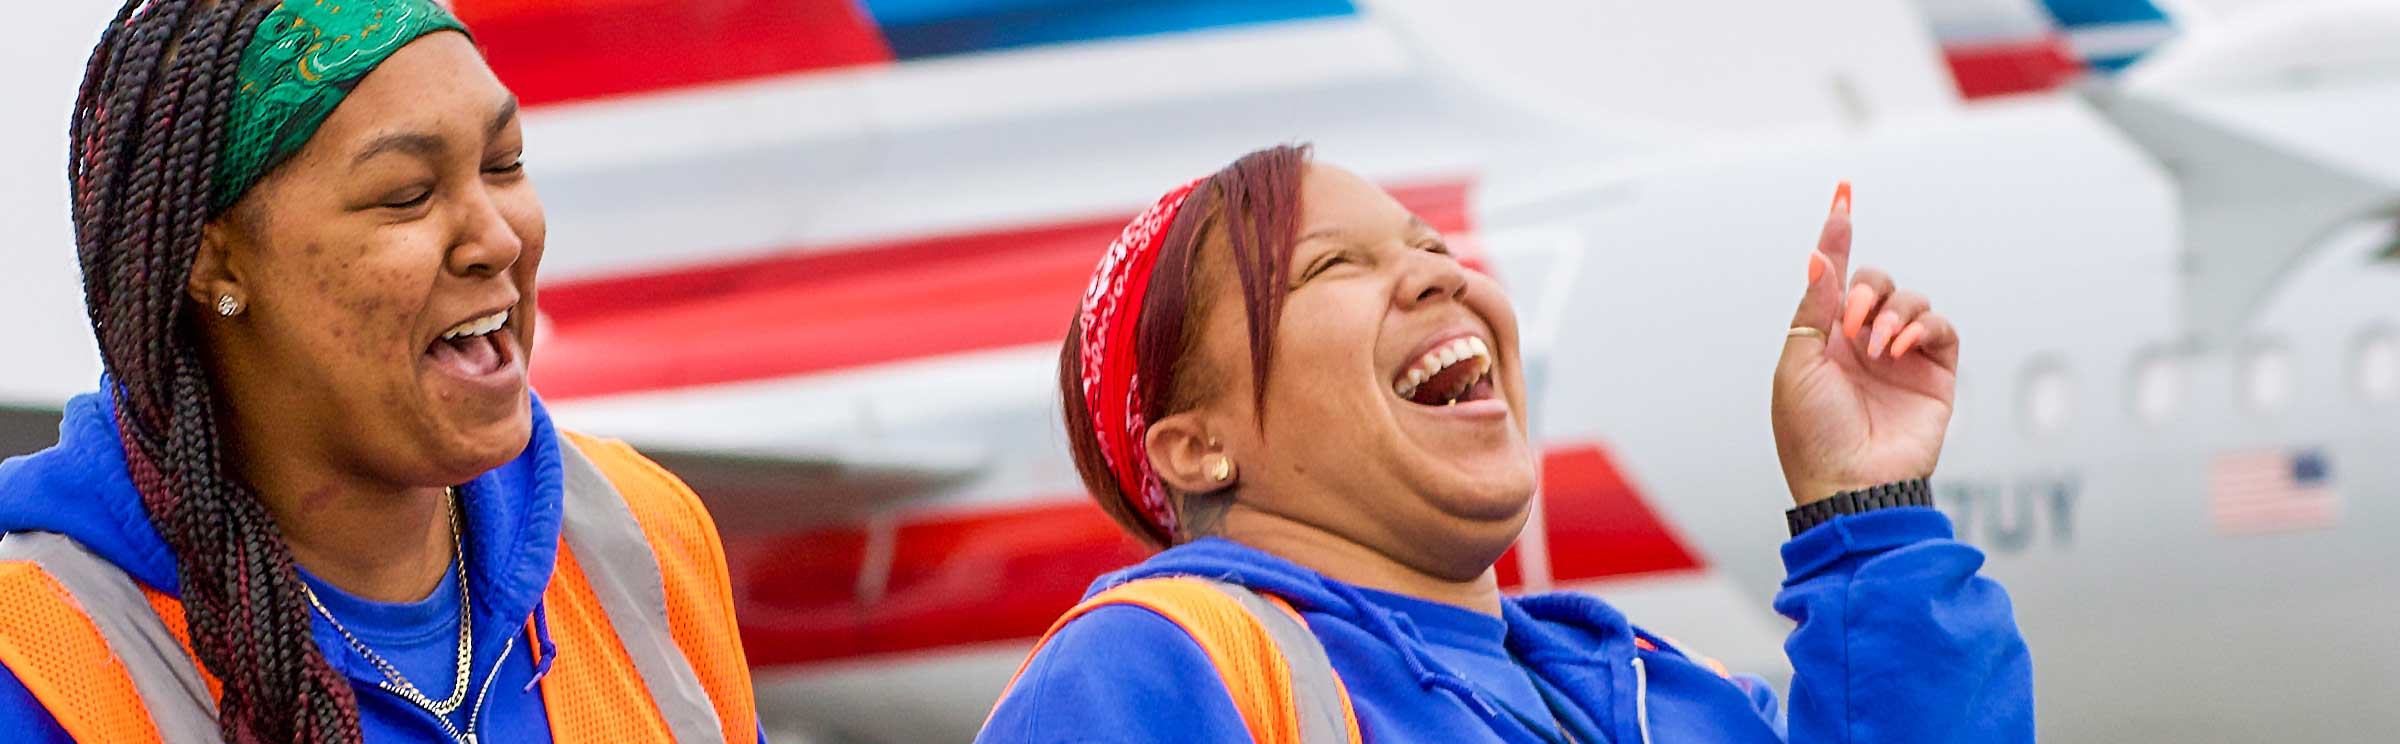 Happy aviation ground services employees